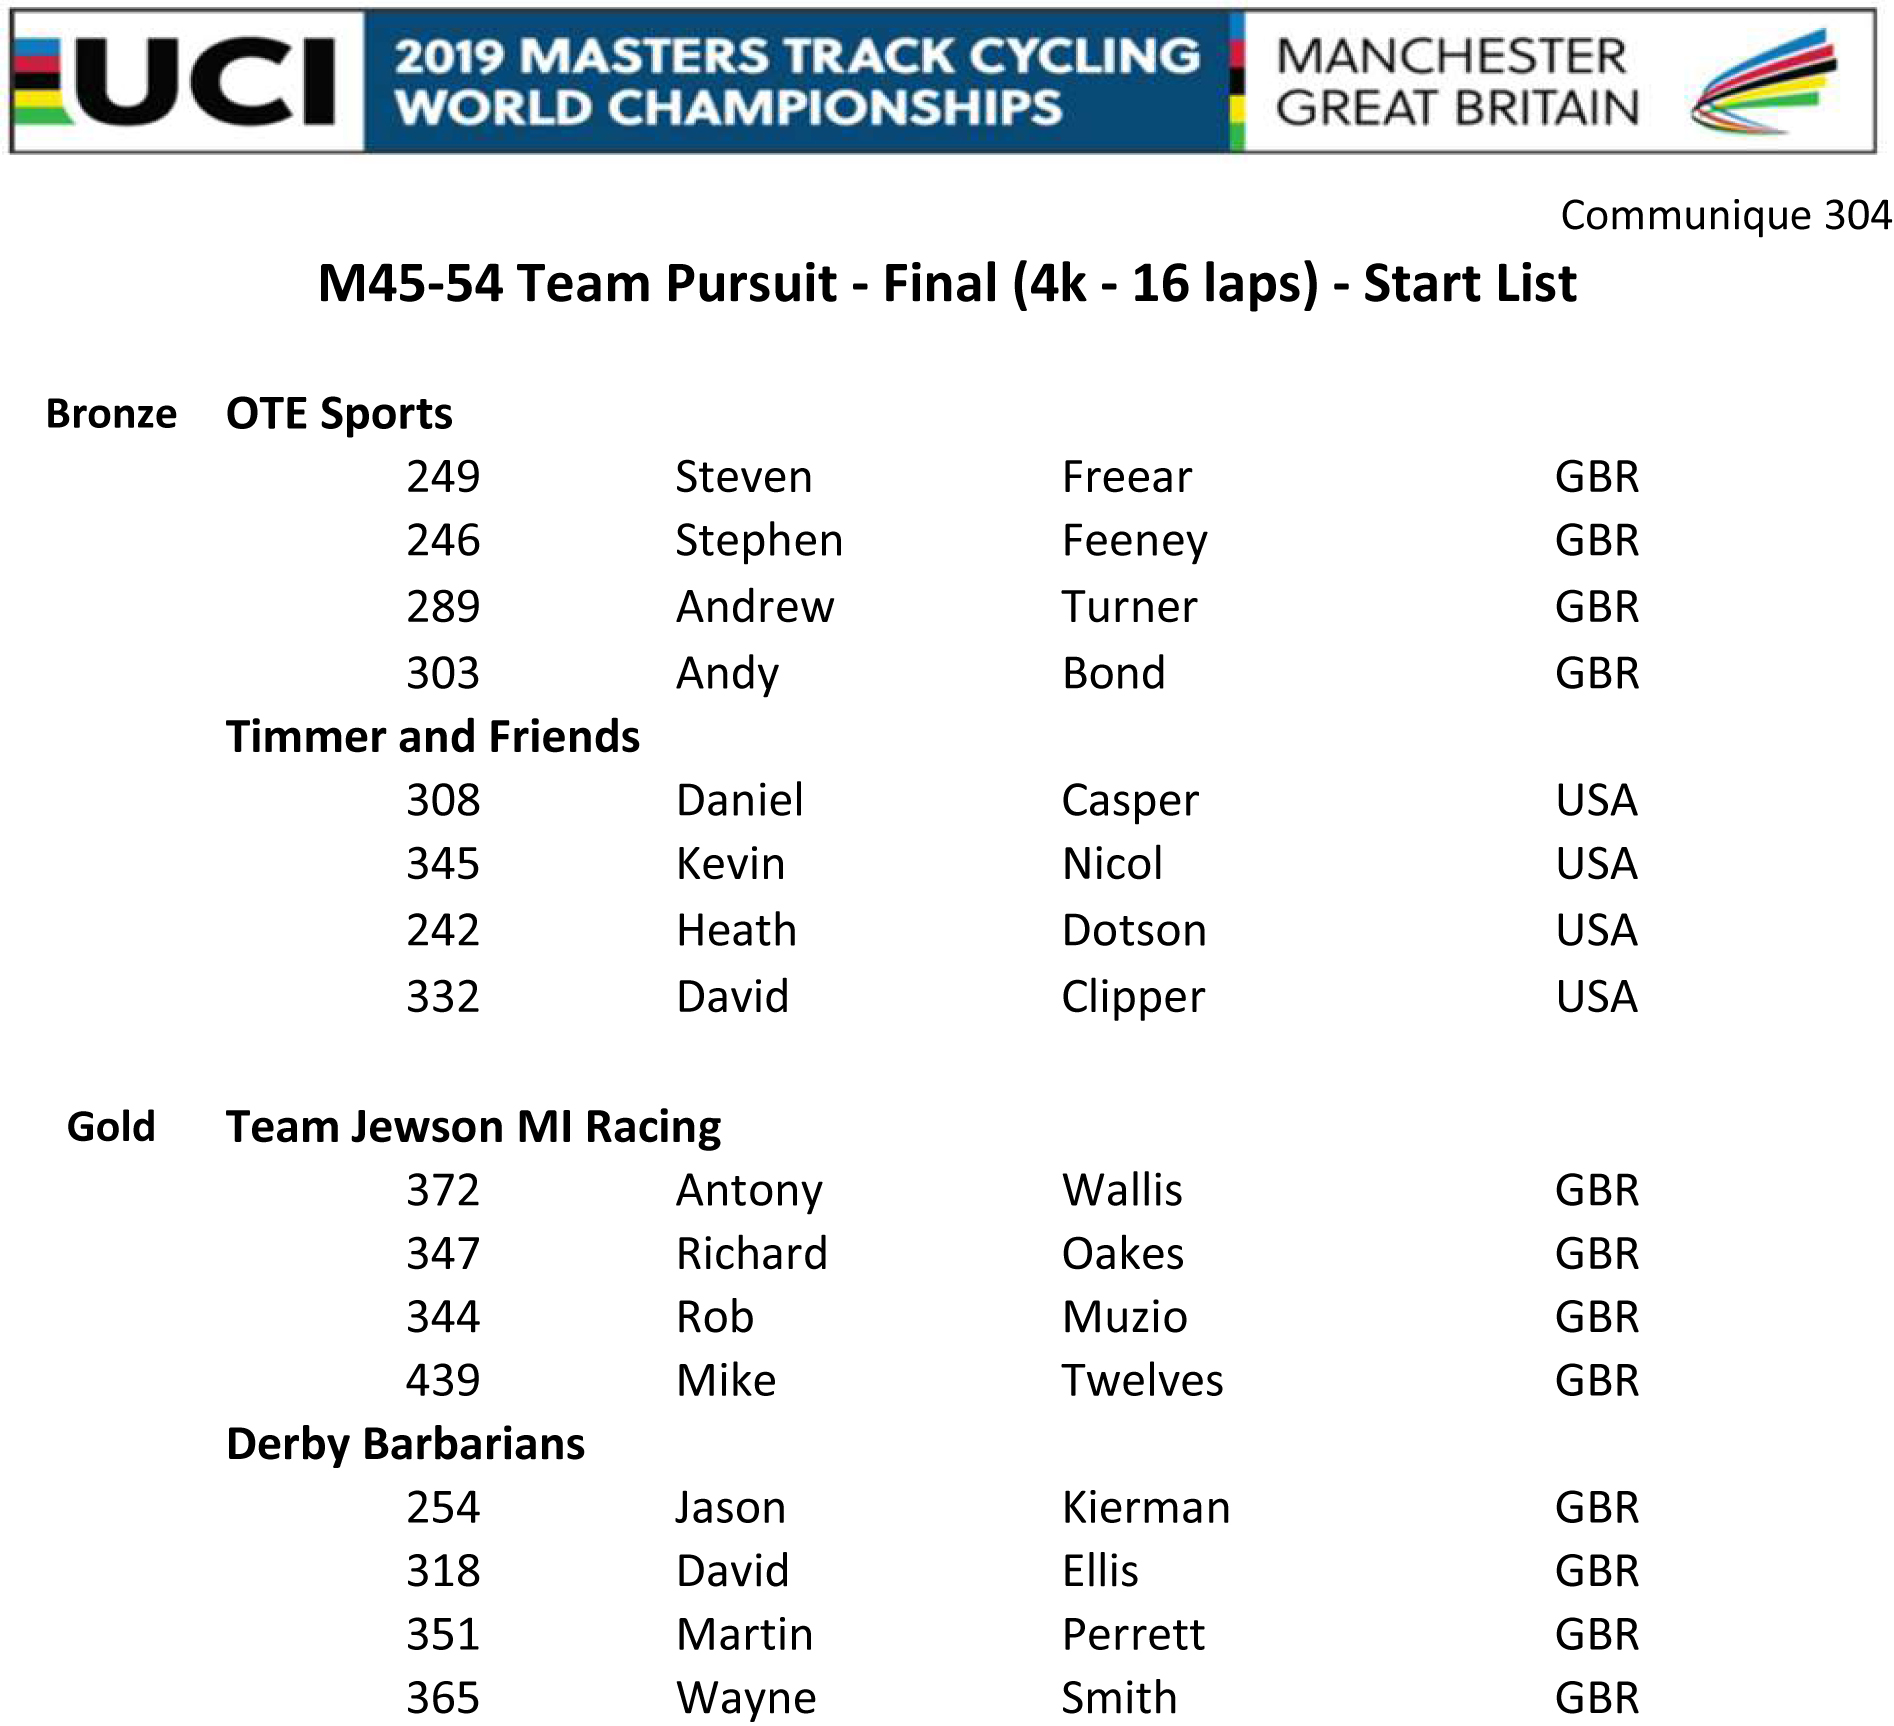 M4554 TEAM PURSUIT FINAL START LIST